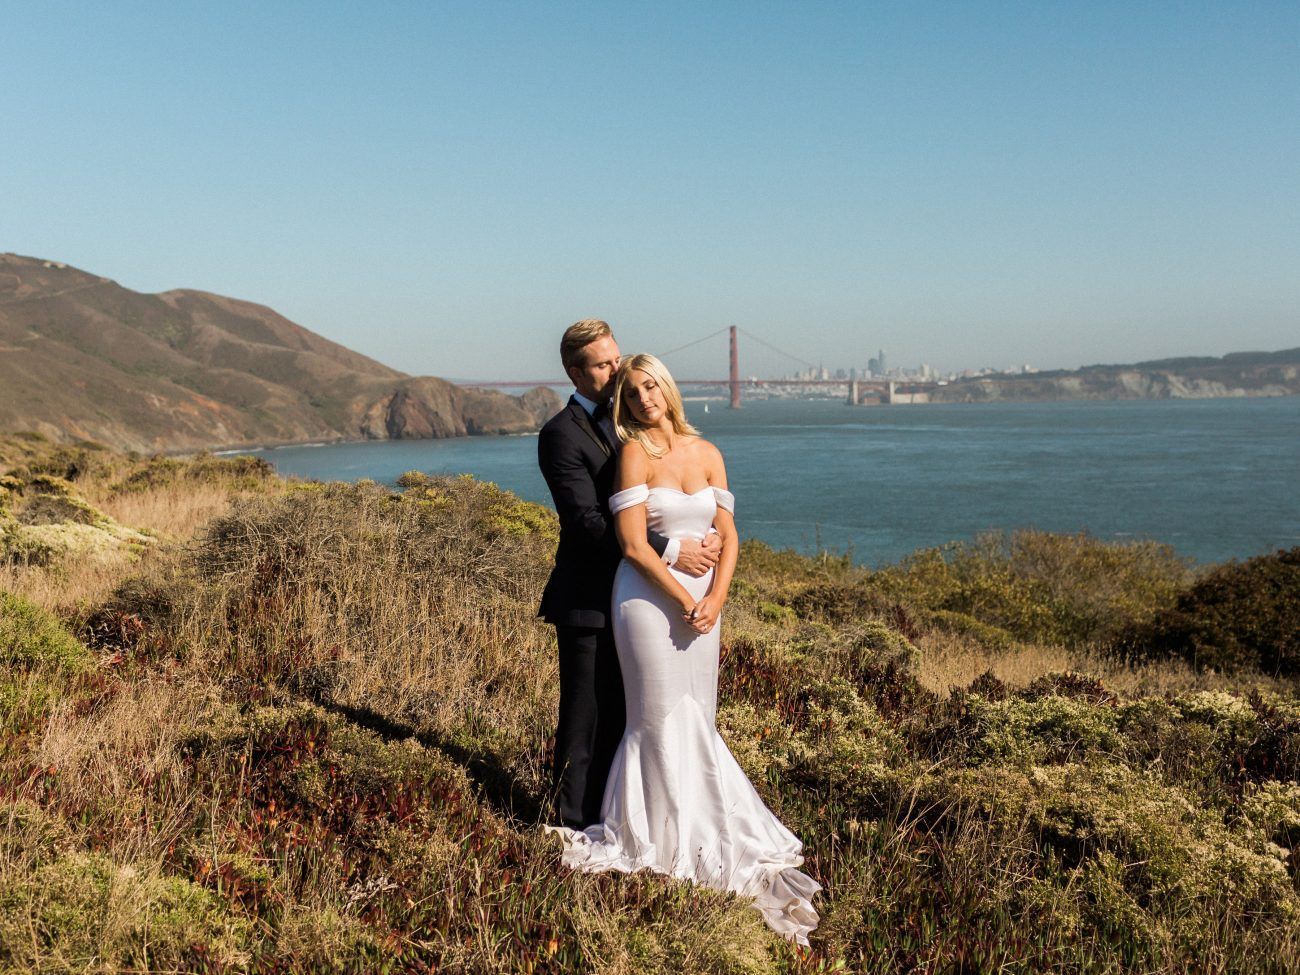 Apollo-Fotografie-SanFrancisco-Waterfront-Real-Wedding-16